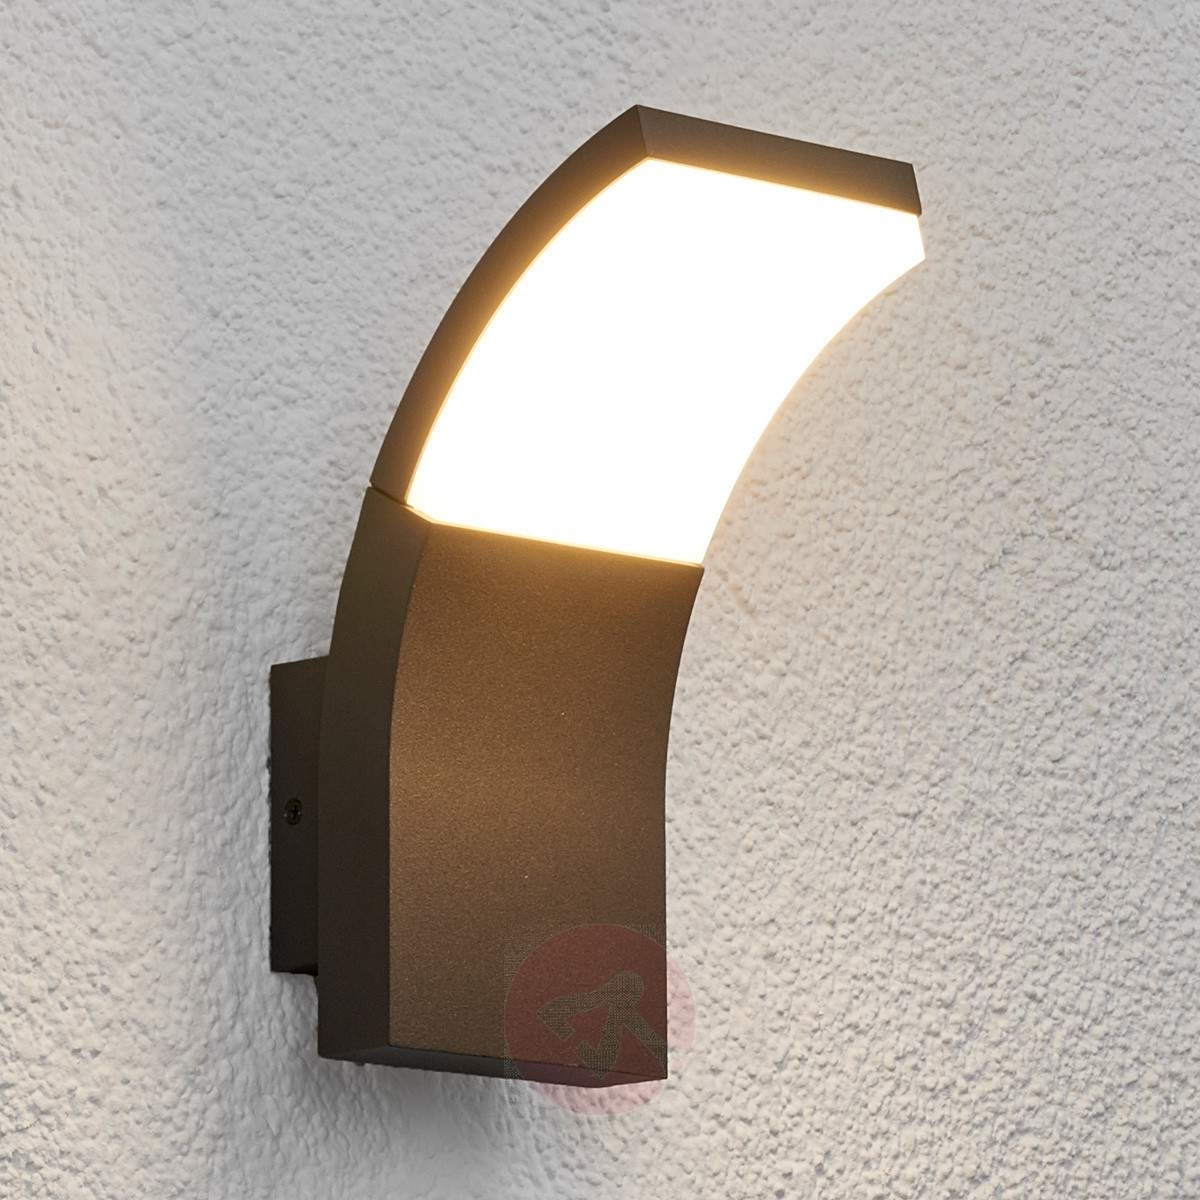 Widely Used Led Outdoor Wall Light Timm Lights Co Uk Brilliant Led In 4 With Outdoor Wall Lights At John Lewis (View 20 of 20)